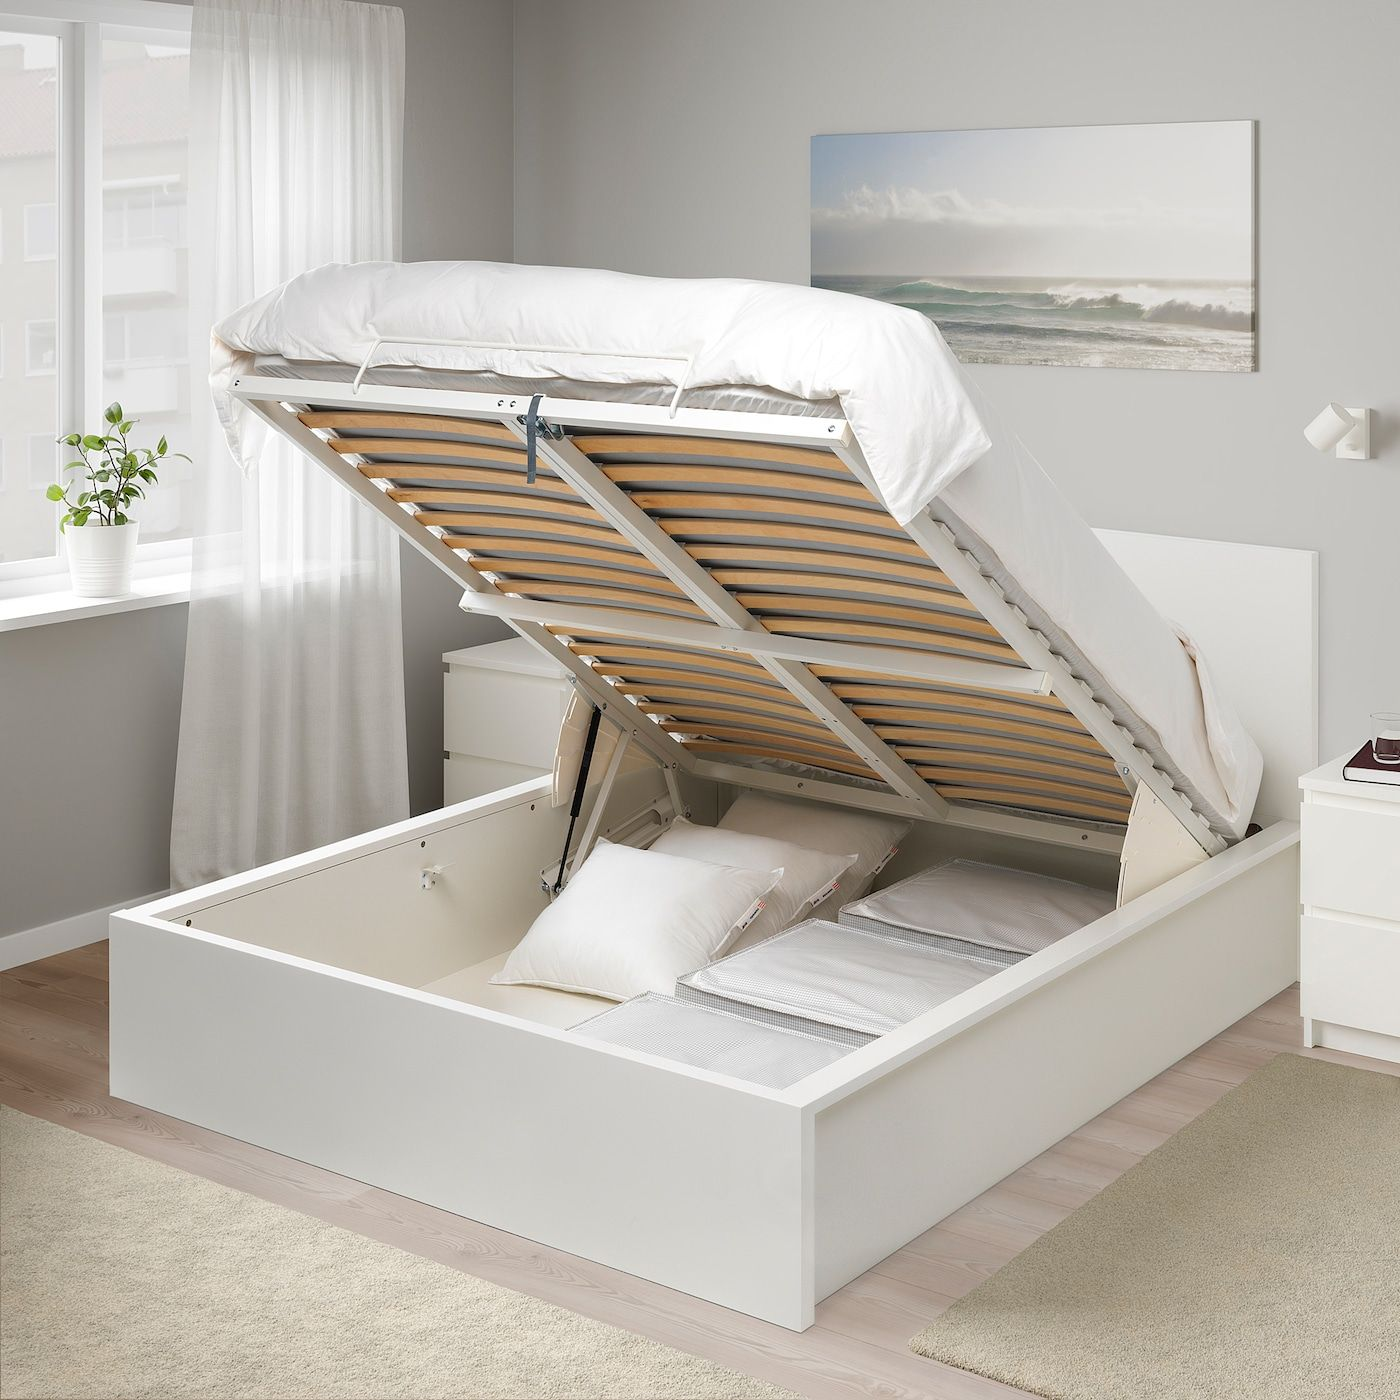 Malm Storage Bed White Full Double In 2020 Bed Frame With